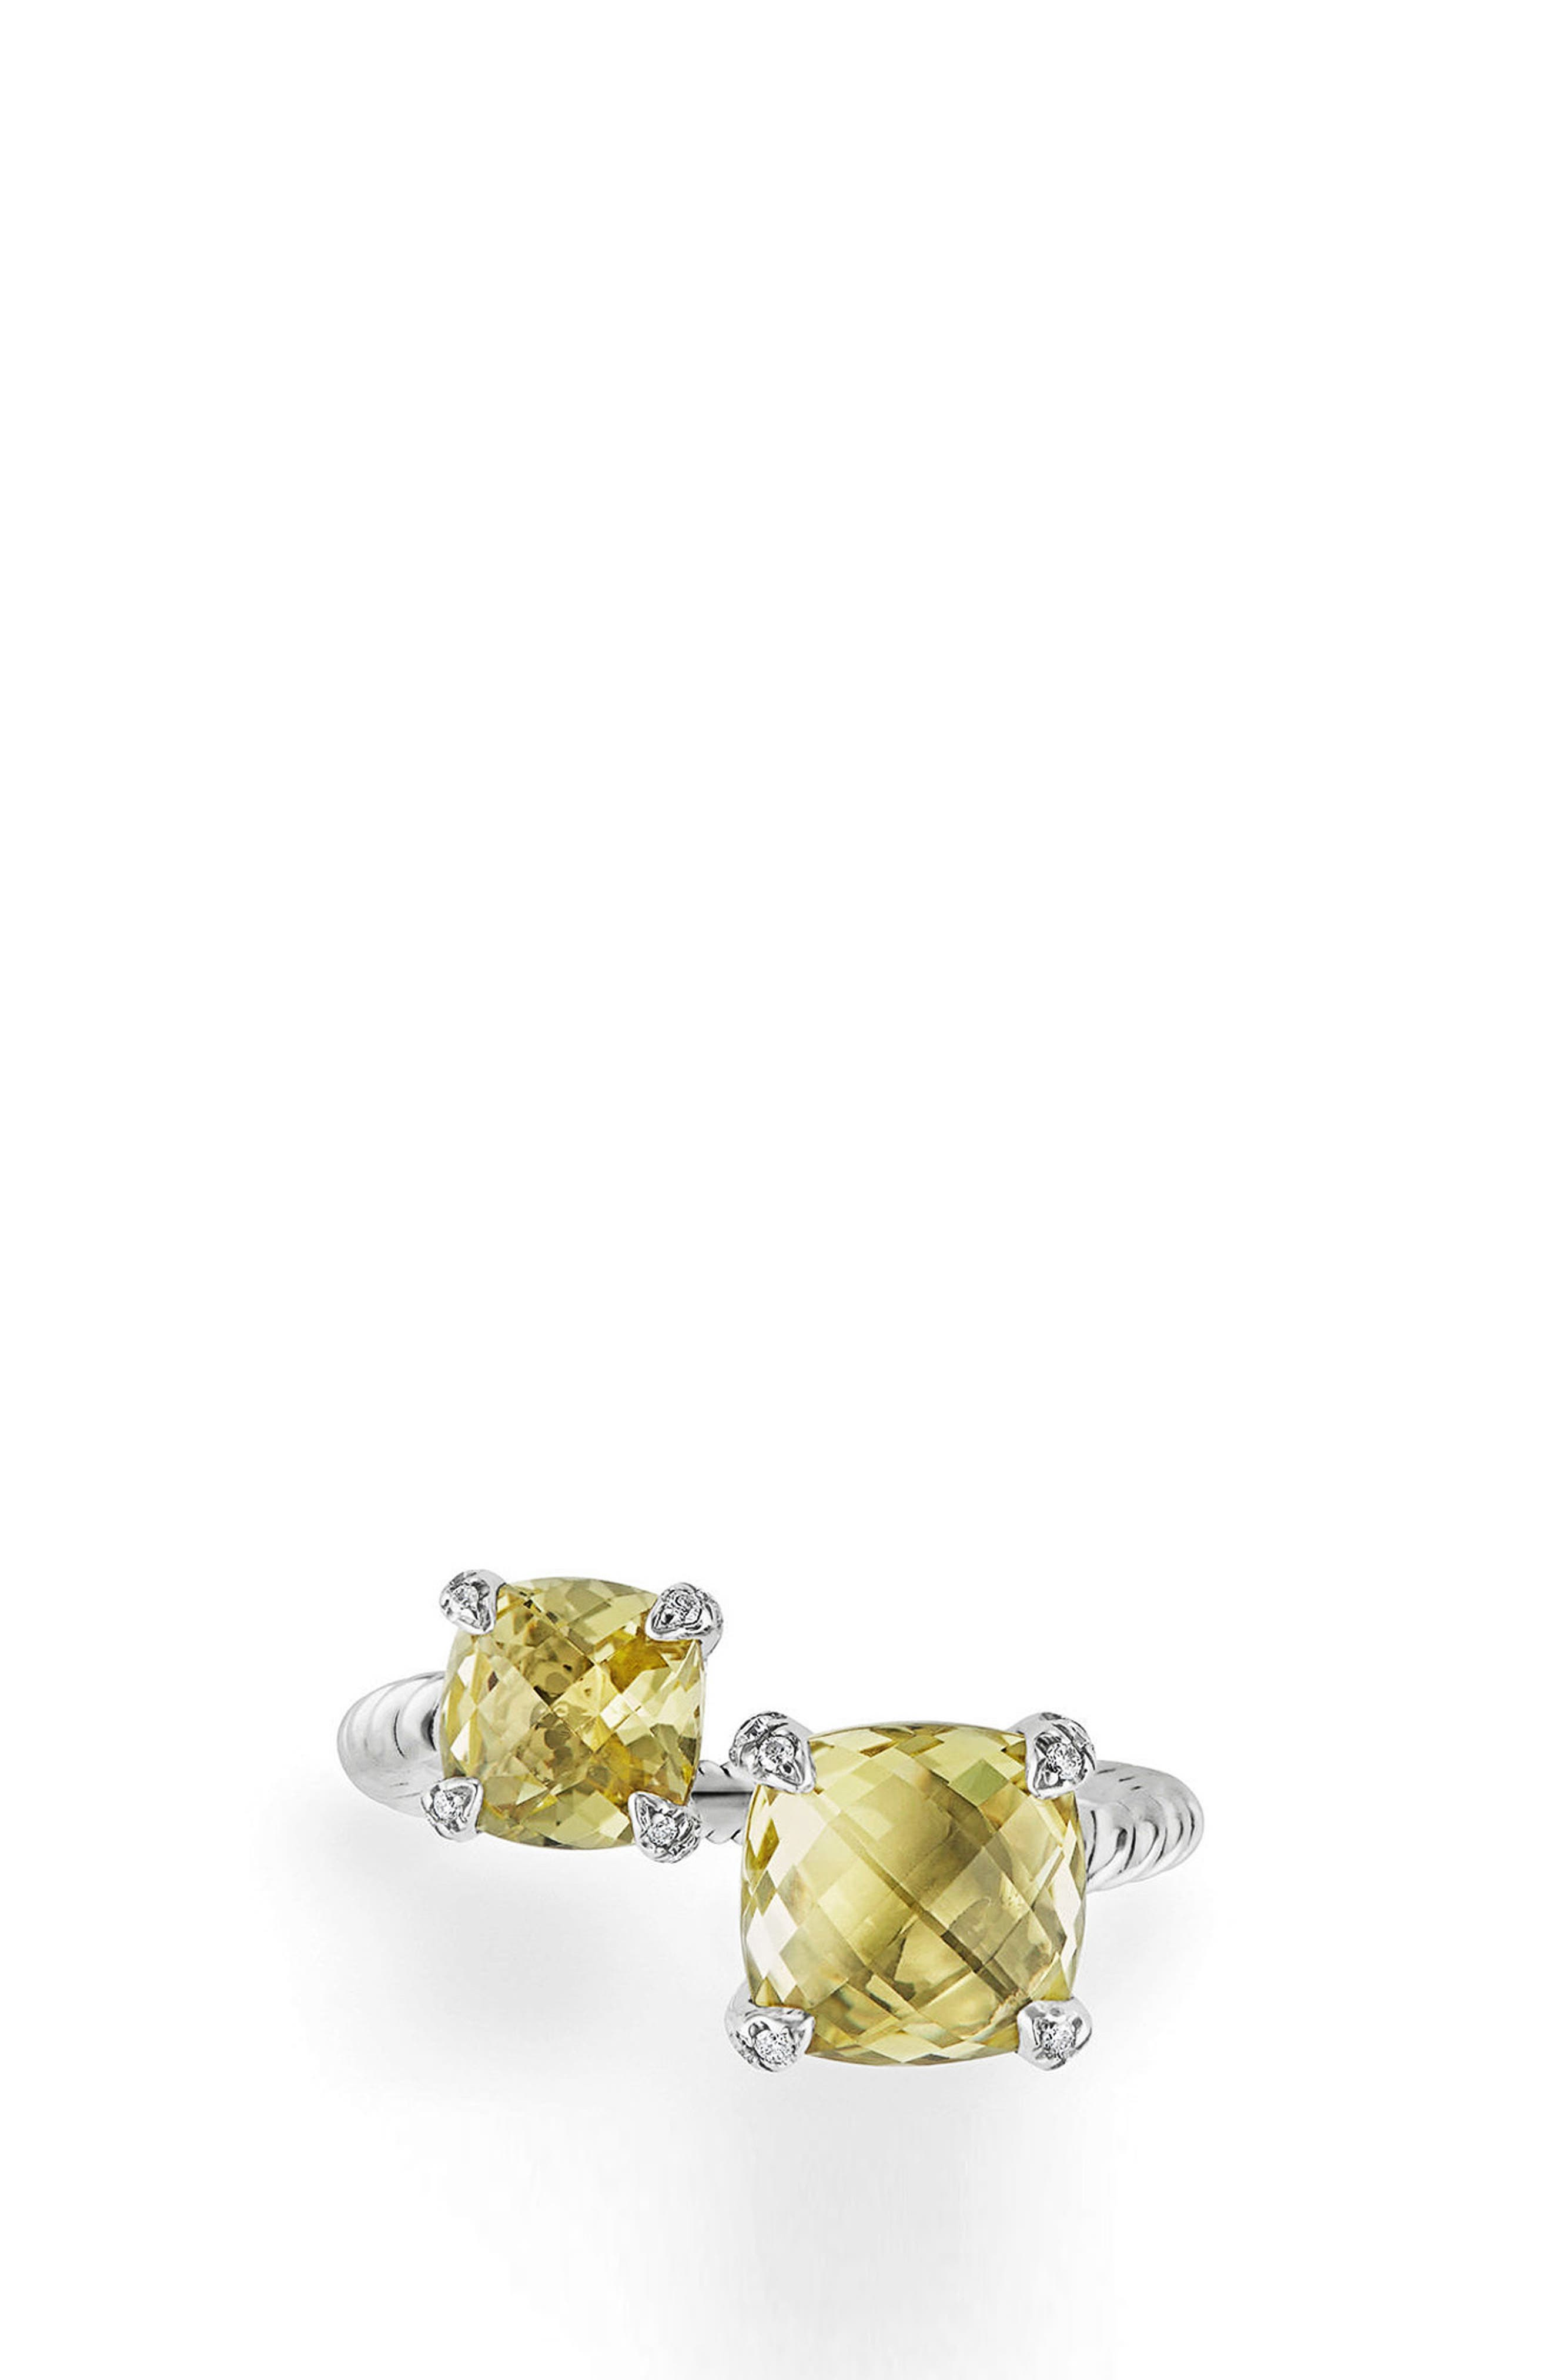 Châtelaine Bypass Ring with Diamonds,                             Alternate thumbnail 3, color,                             Lemon Citrine?